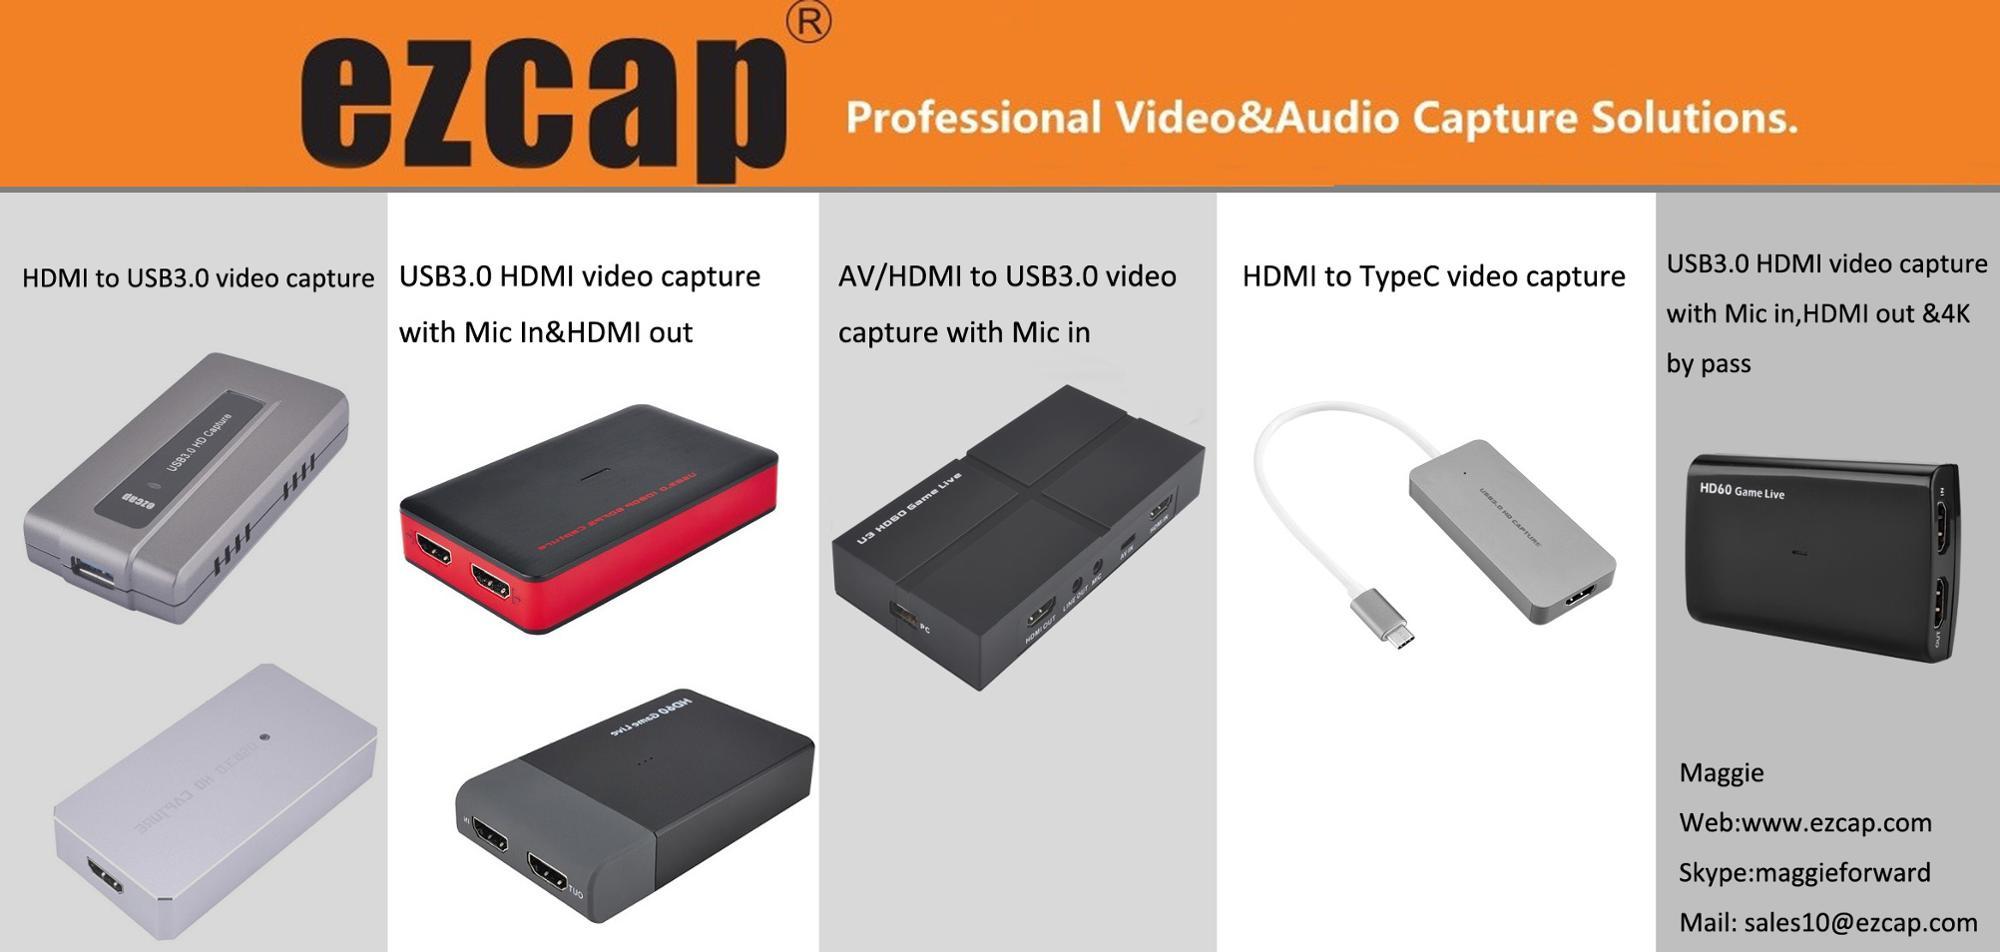 1080P HDMI to USB 3.0 UVC Capture Card Dongle for Live streaming with MIC in 4K 60fps by pass ezcap266